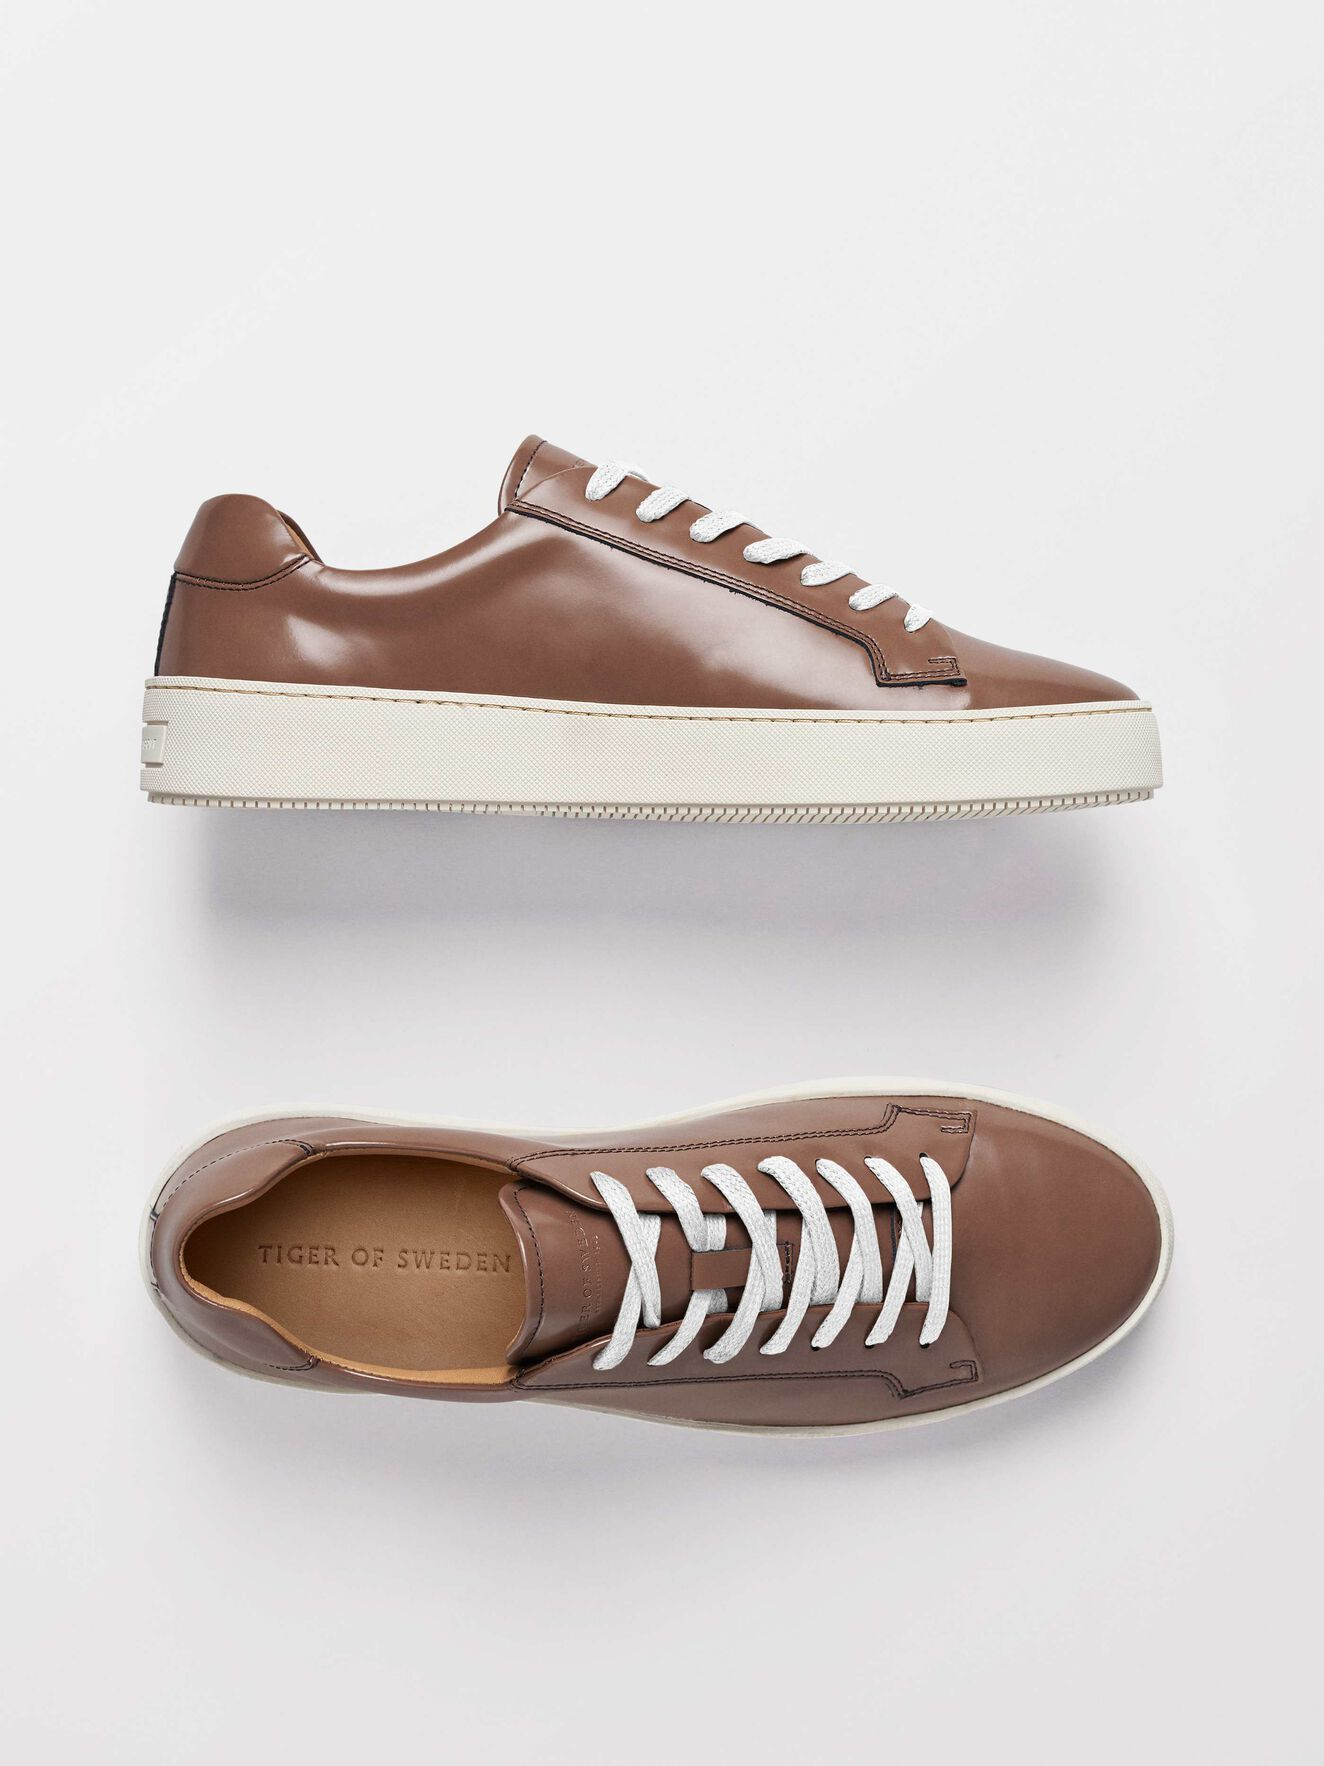 Salas P Sneakers in Dark Sand from Tiger of Sweden